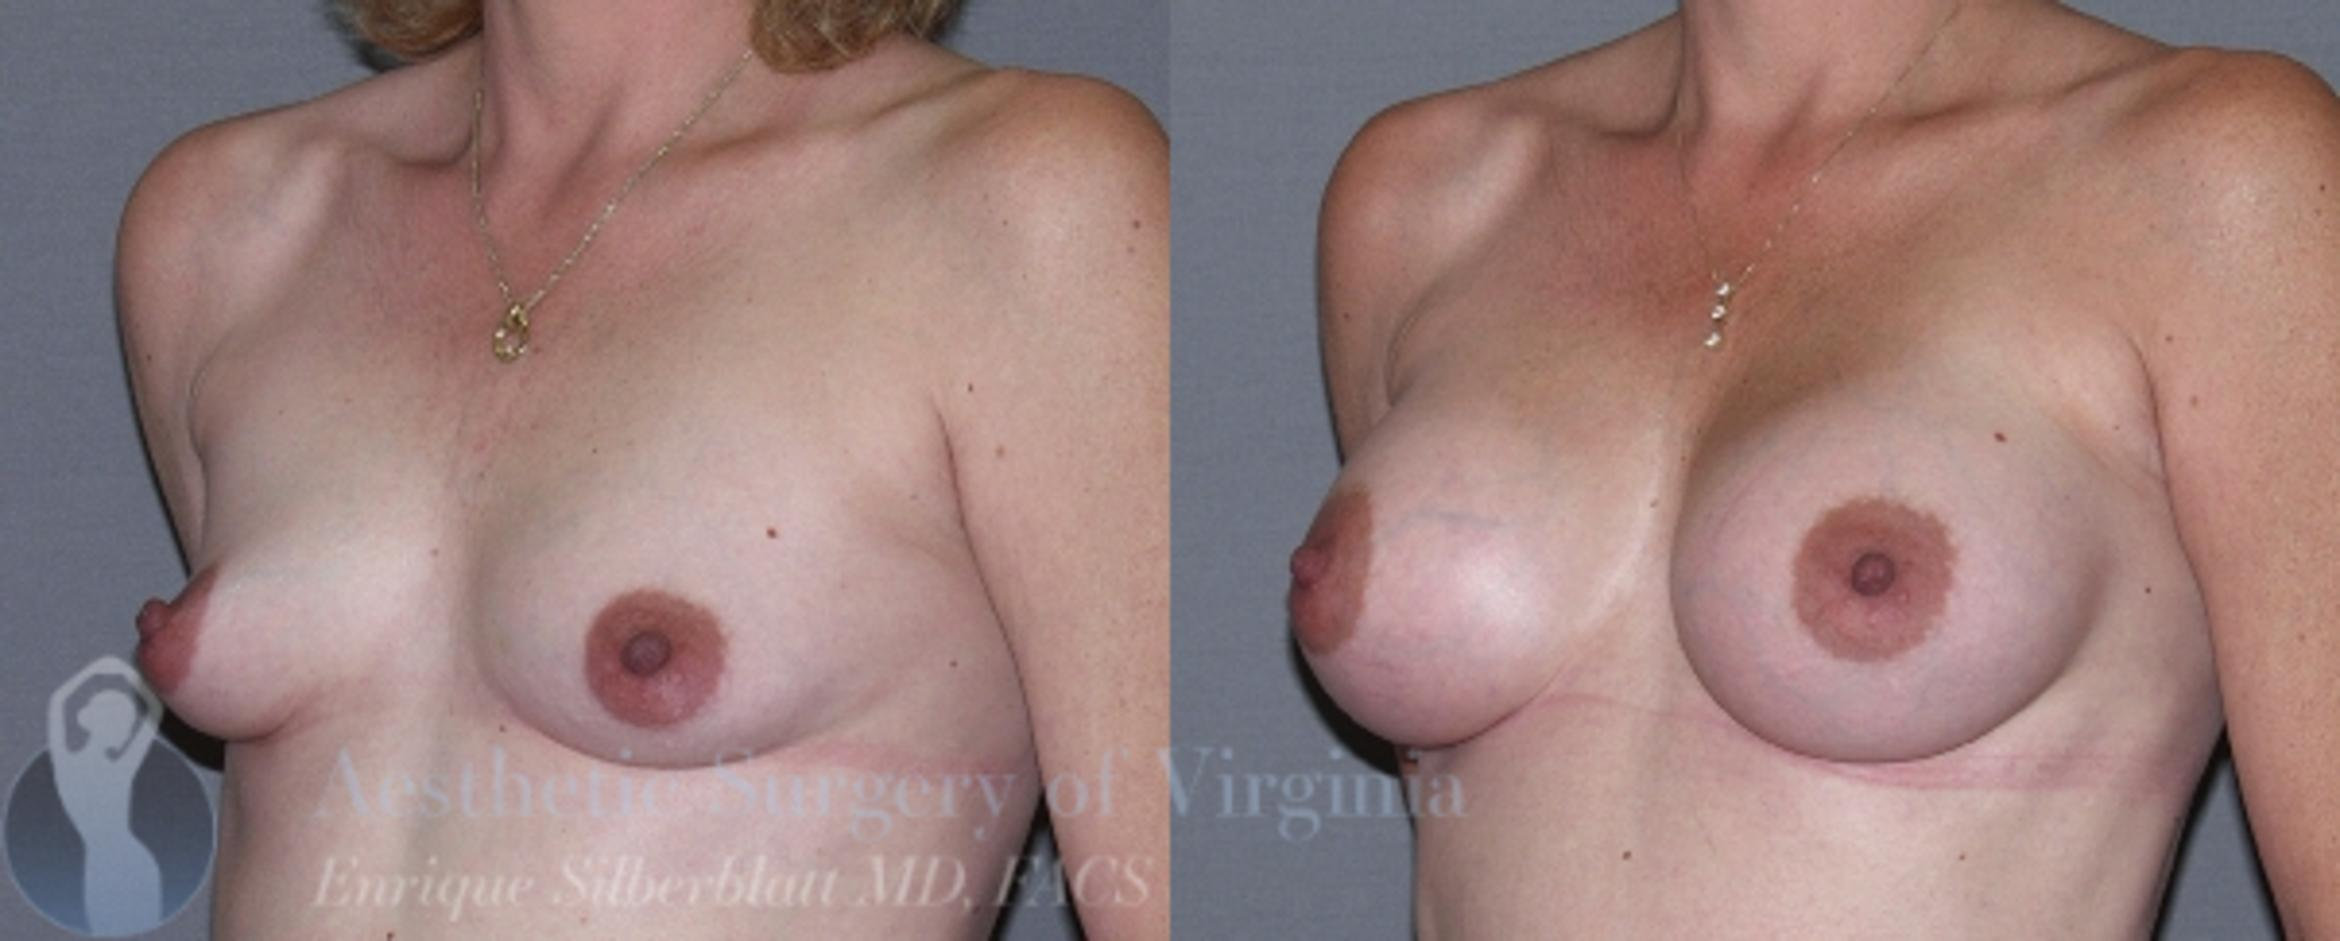 Breast Augmentation Case 12 Before & After View #2 | Roanoke, VA | Aesthetic Surgery of Virginia: Enrique Silberblatt, MD